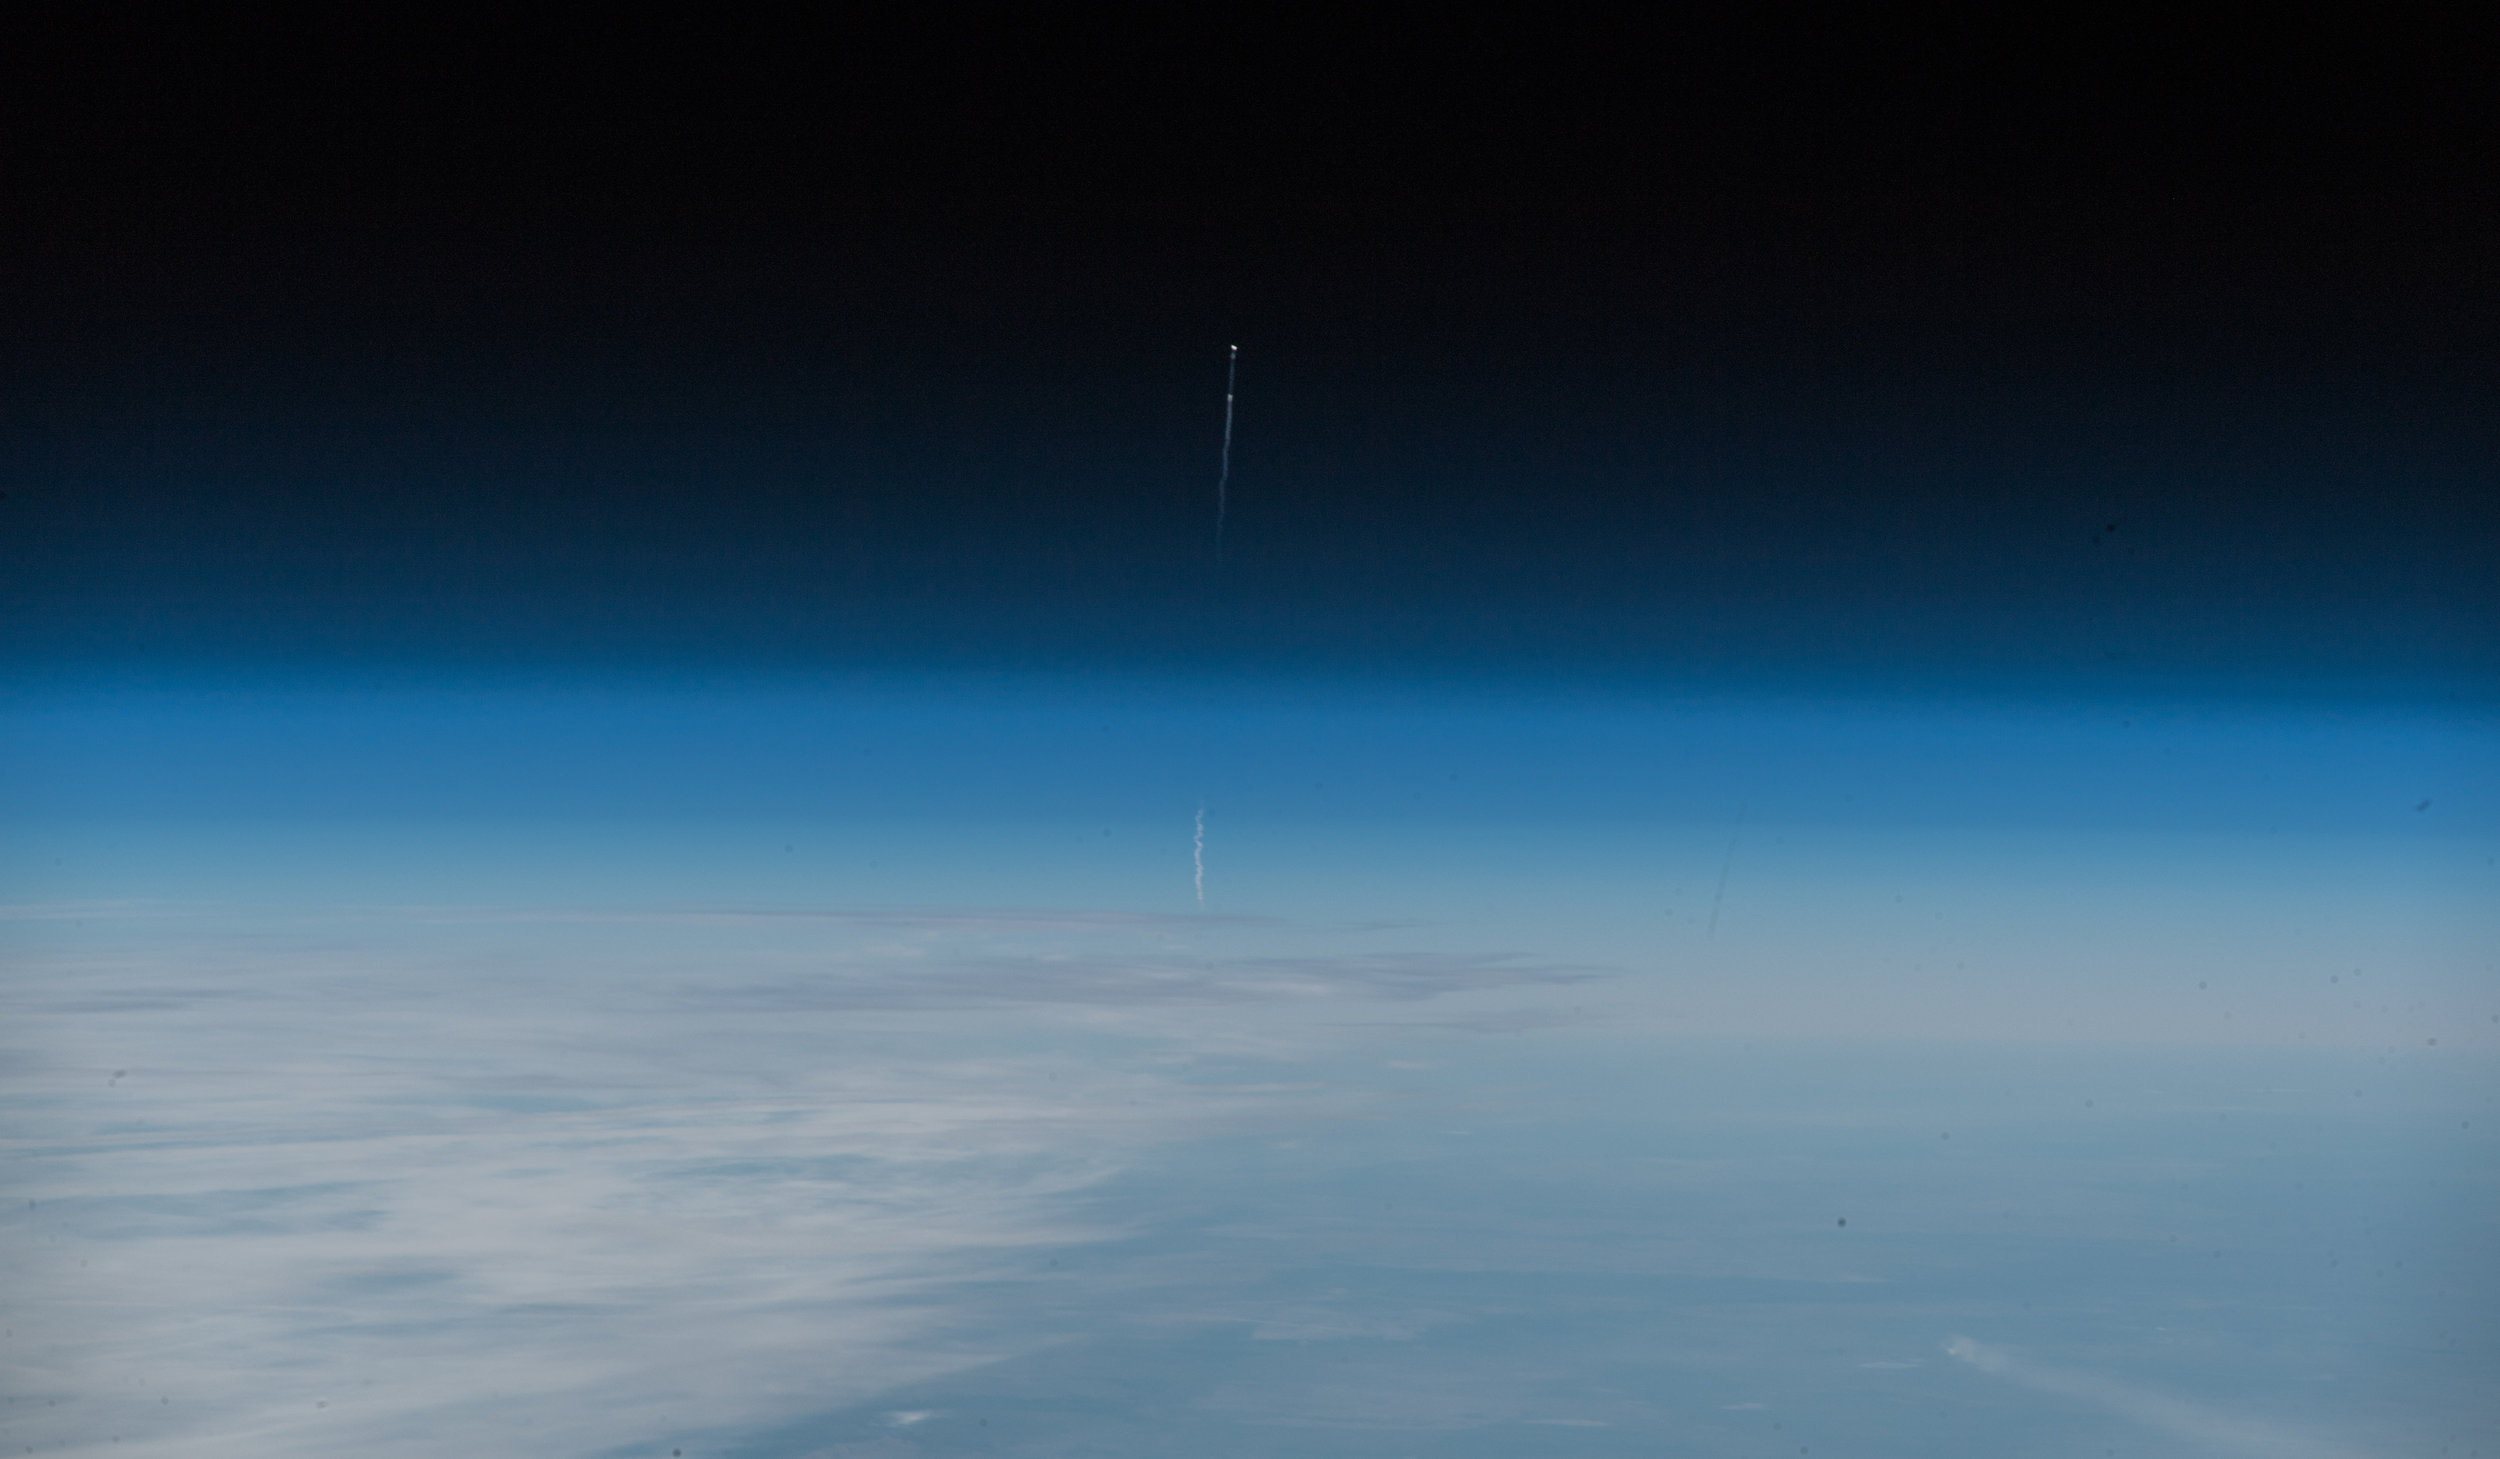 The Soyuz MS-10 launch failure as seen from the International Space Station. Credit: ESA/Alexander Gerst